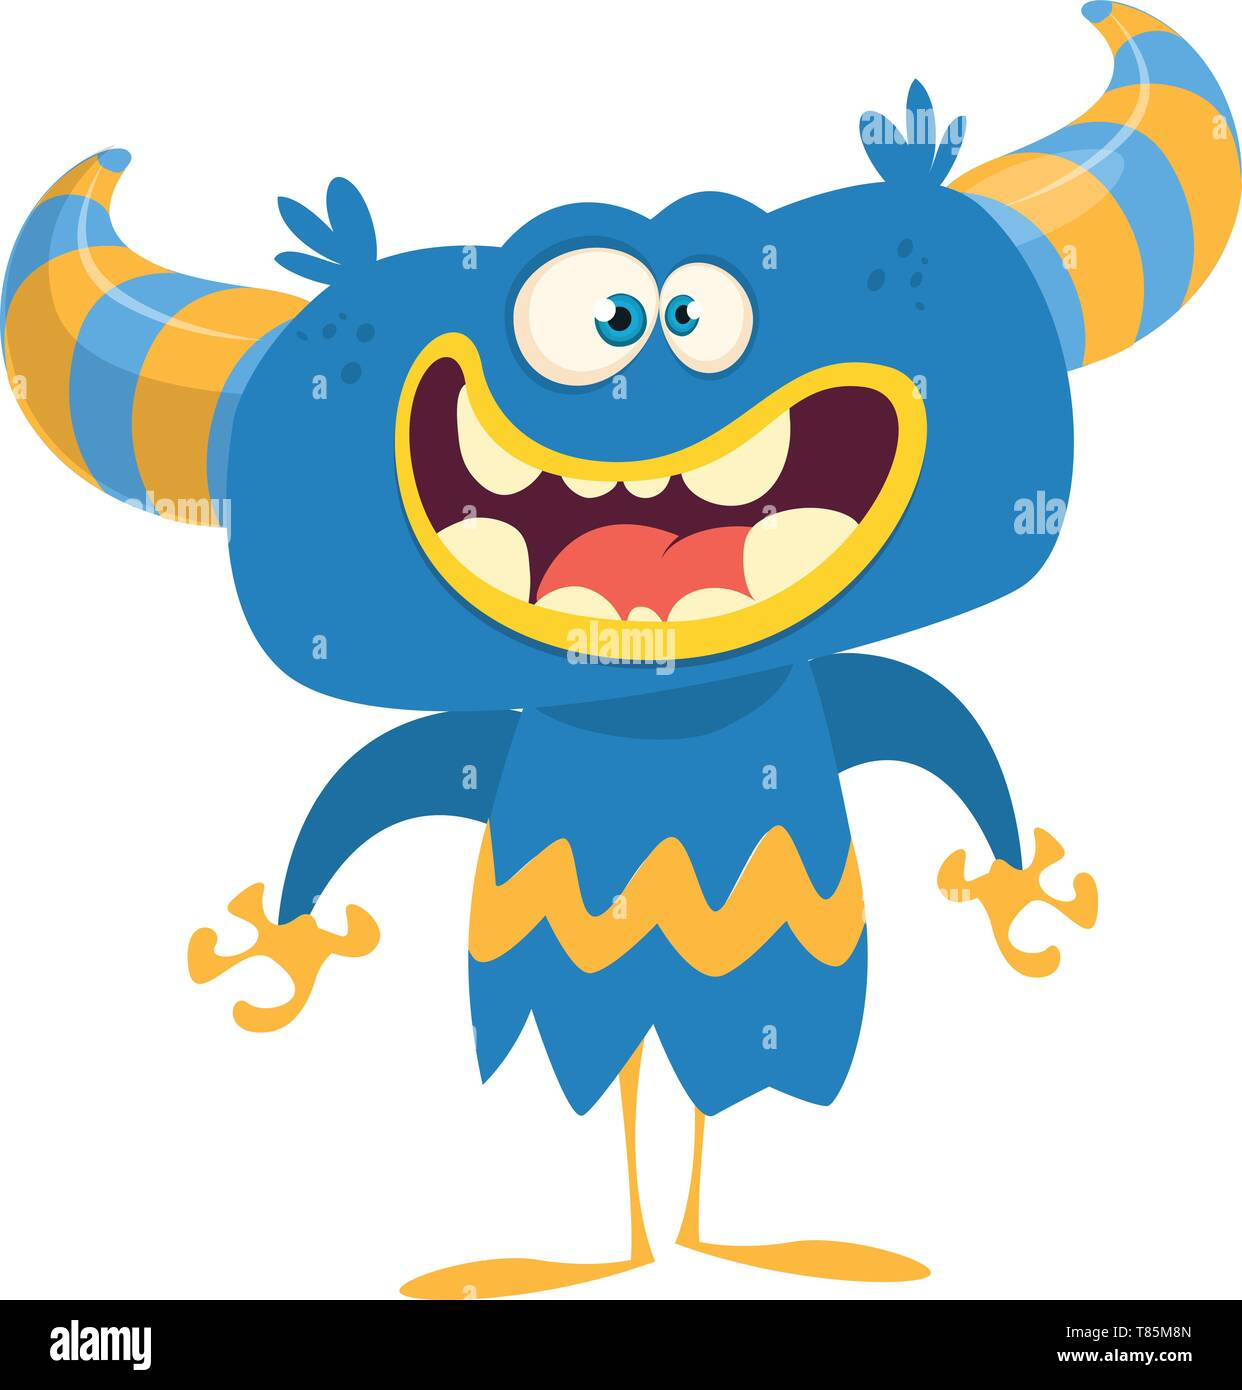 Happy cartoon monster with horns. Vector illustration - Stock Image